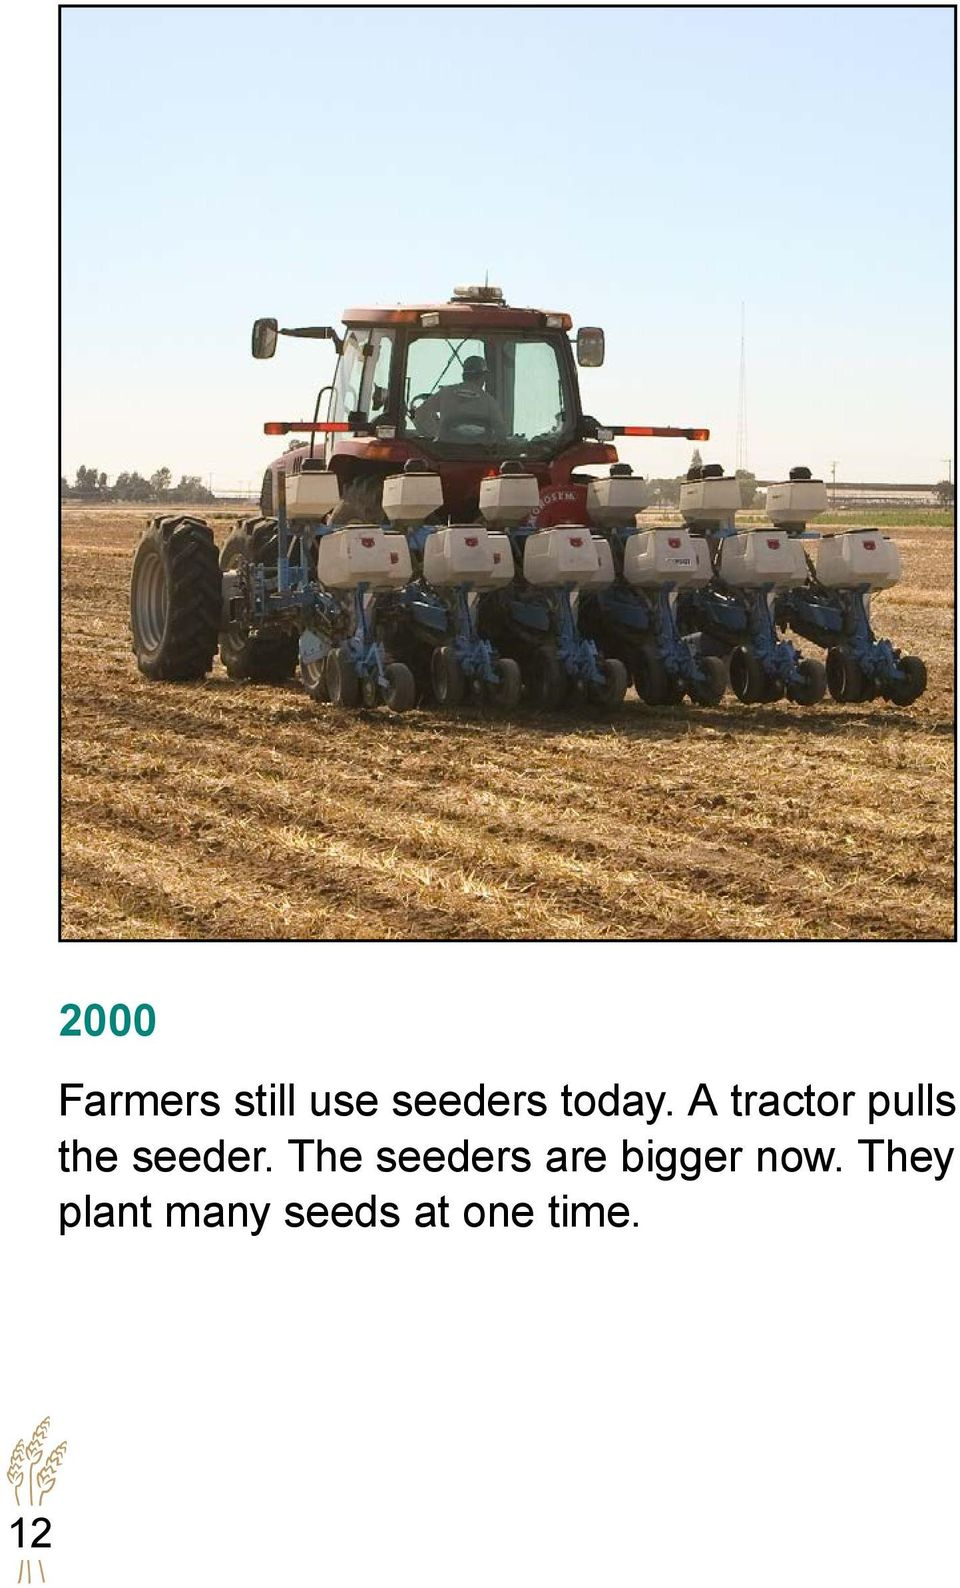 A tractor pulls the seeder.